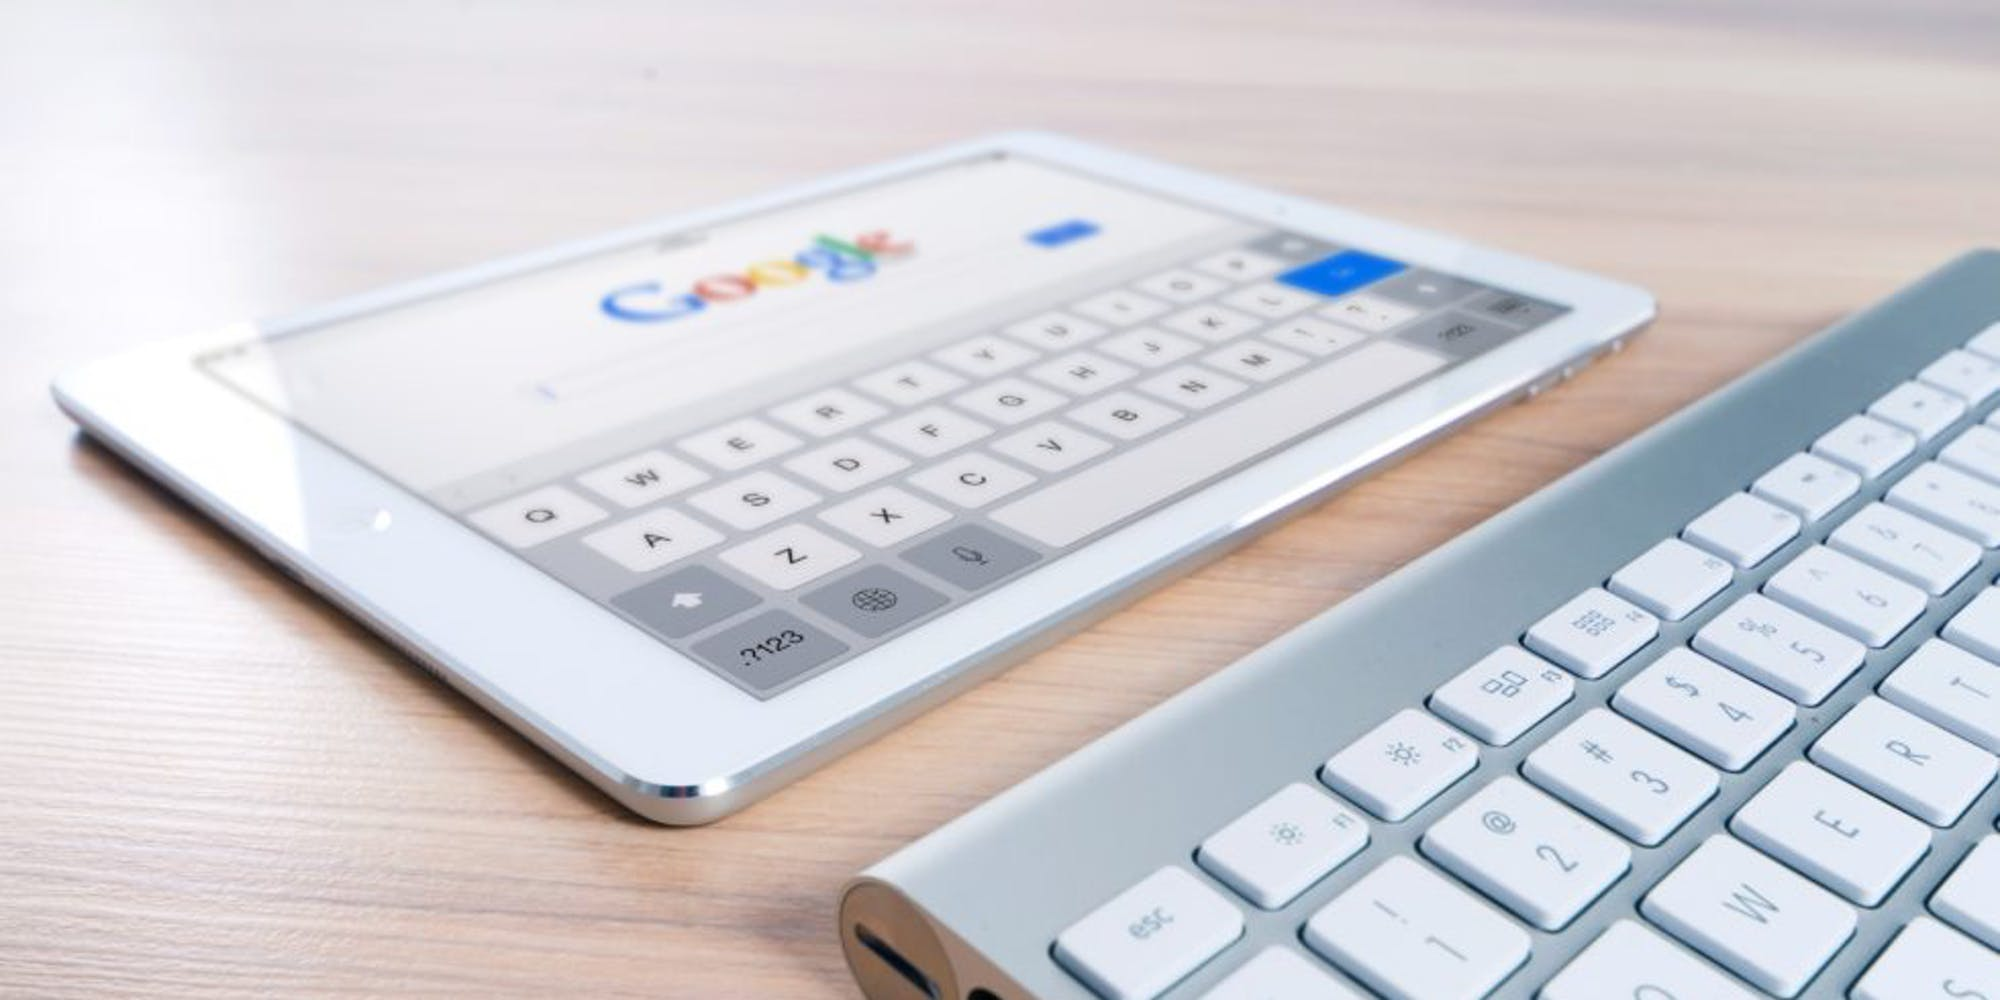 A tablet displaying Google's search engine, with a keyboard next to it